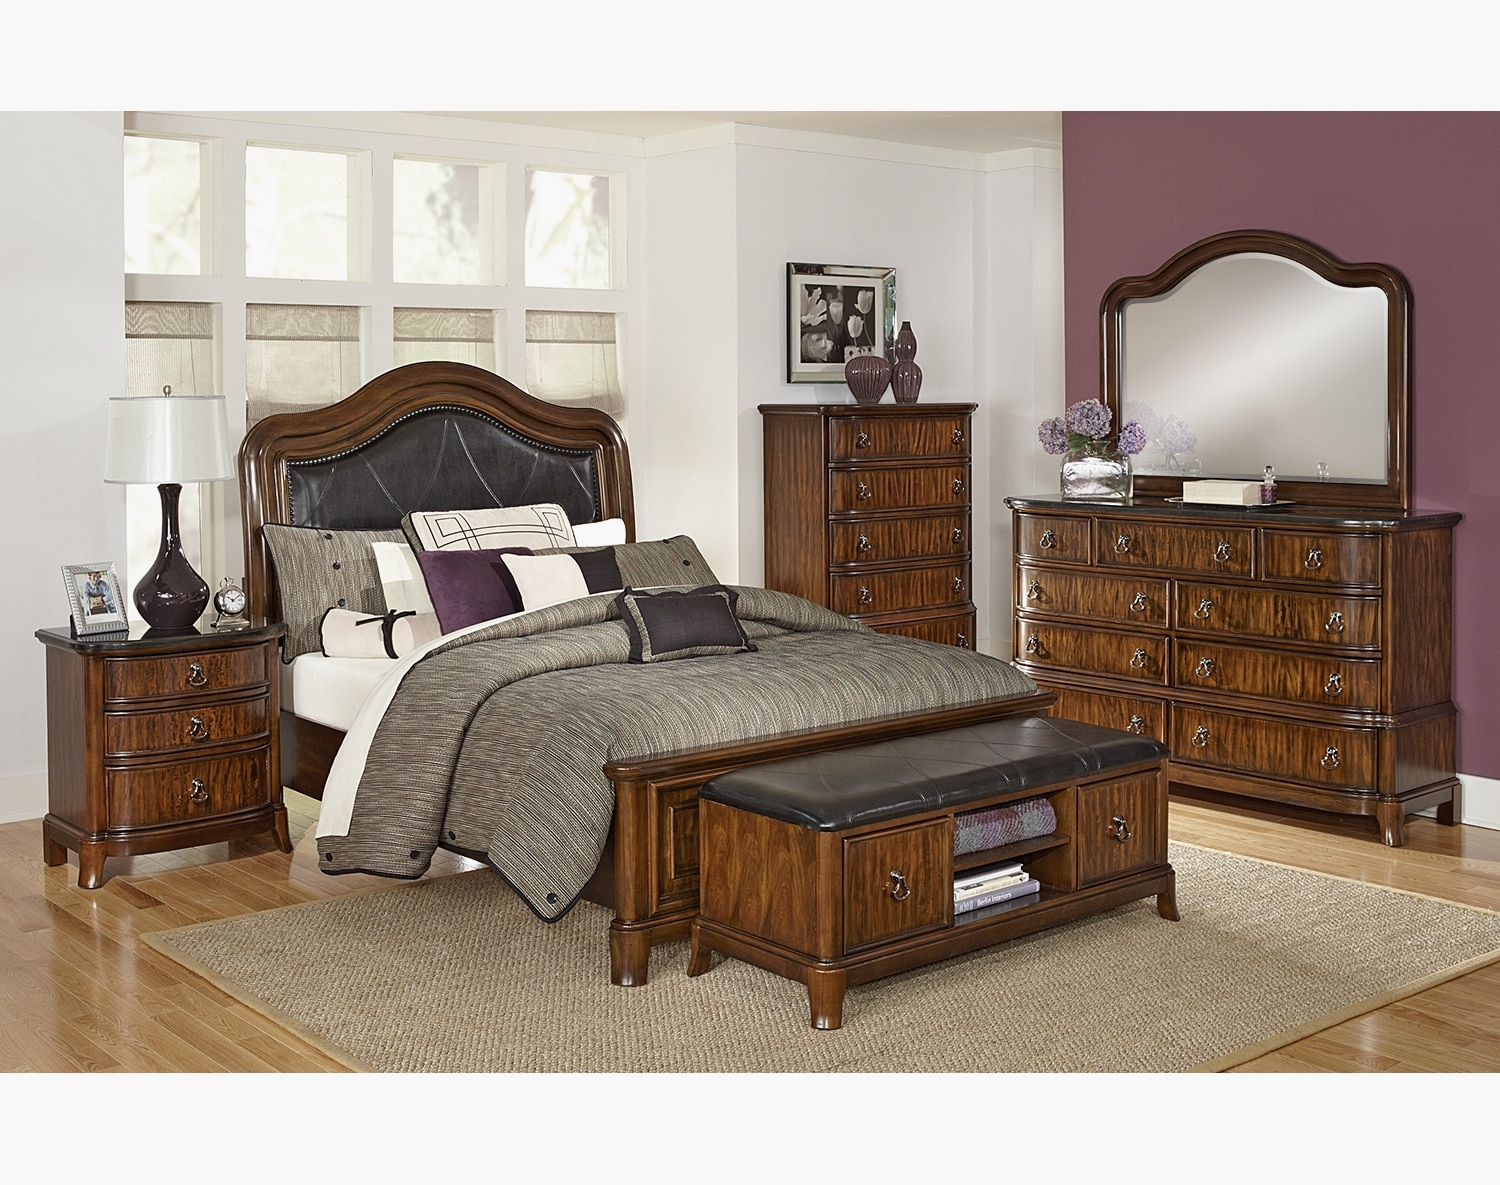 Bedroom Furniture - The Emory Collection - King Bed